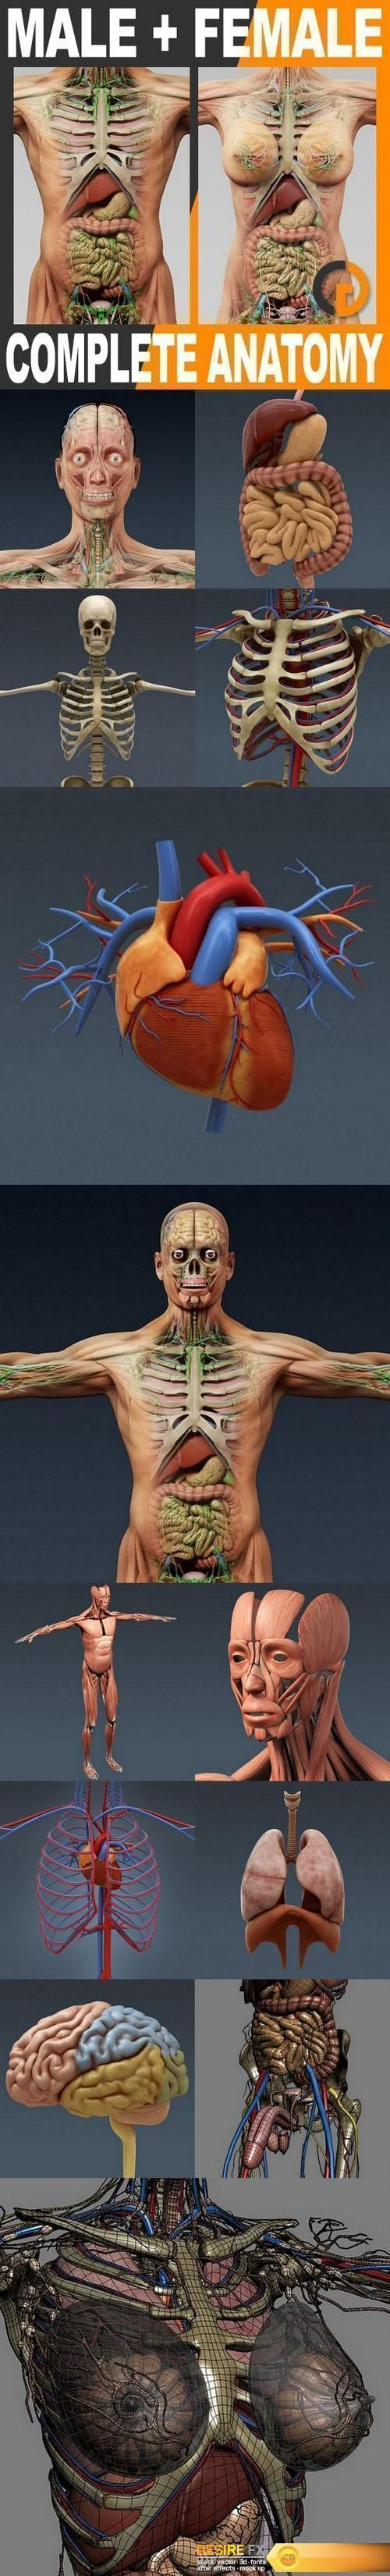 Human Male and Female Complete Anatomy - Body, Muscles, Skeleton, Internal Organs and Lymphatic #3D Model http://www.desirefx.me/human-male-and-female-complete-anatomy-body-muscles-skeleton-internal-organs-and-lymphatic-3d-model/